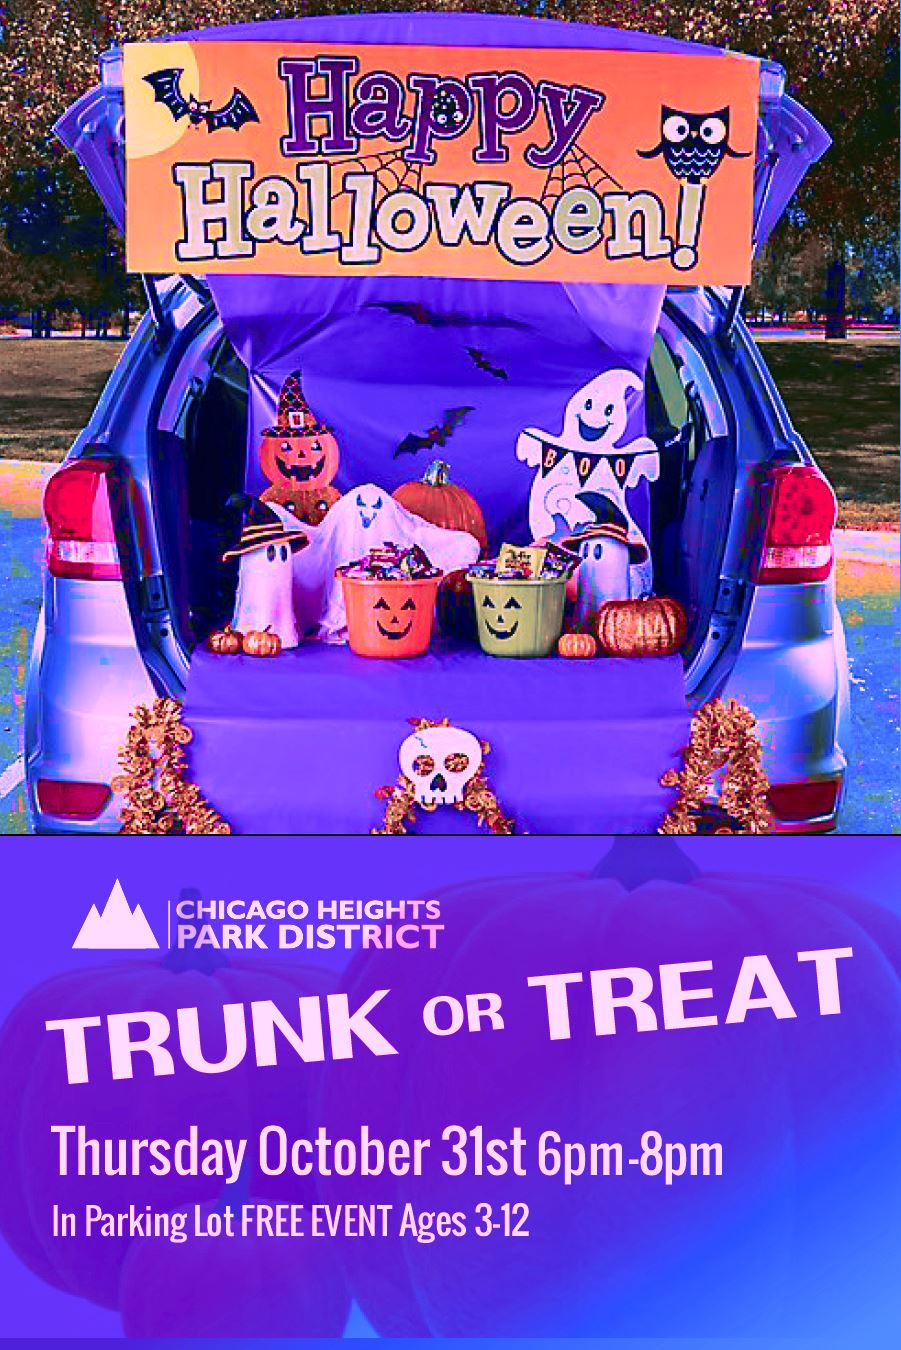 Flyer - C.H. Park District Trunk-or-Treat